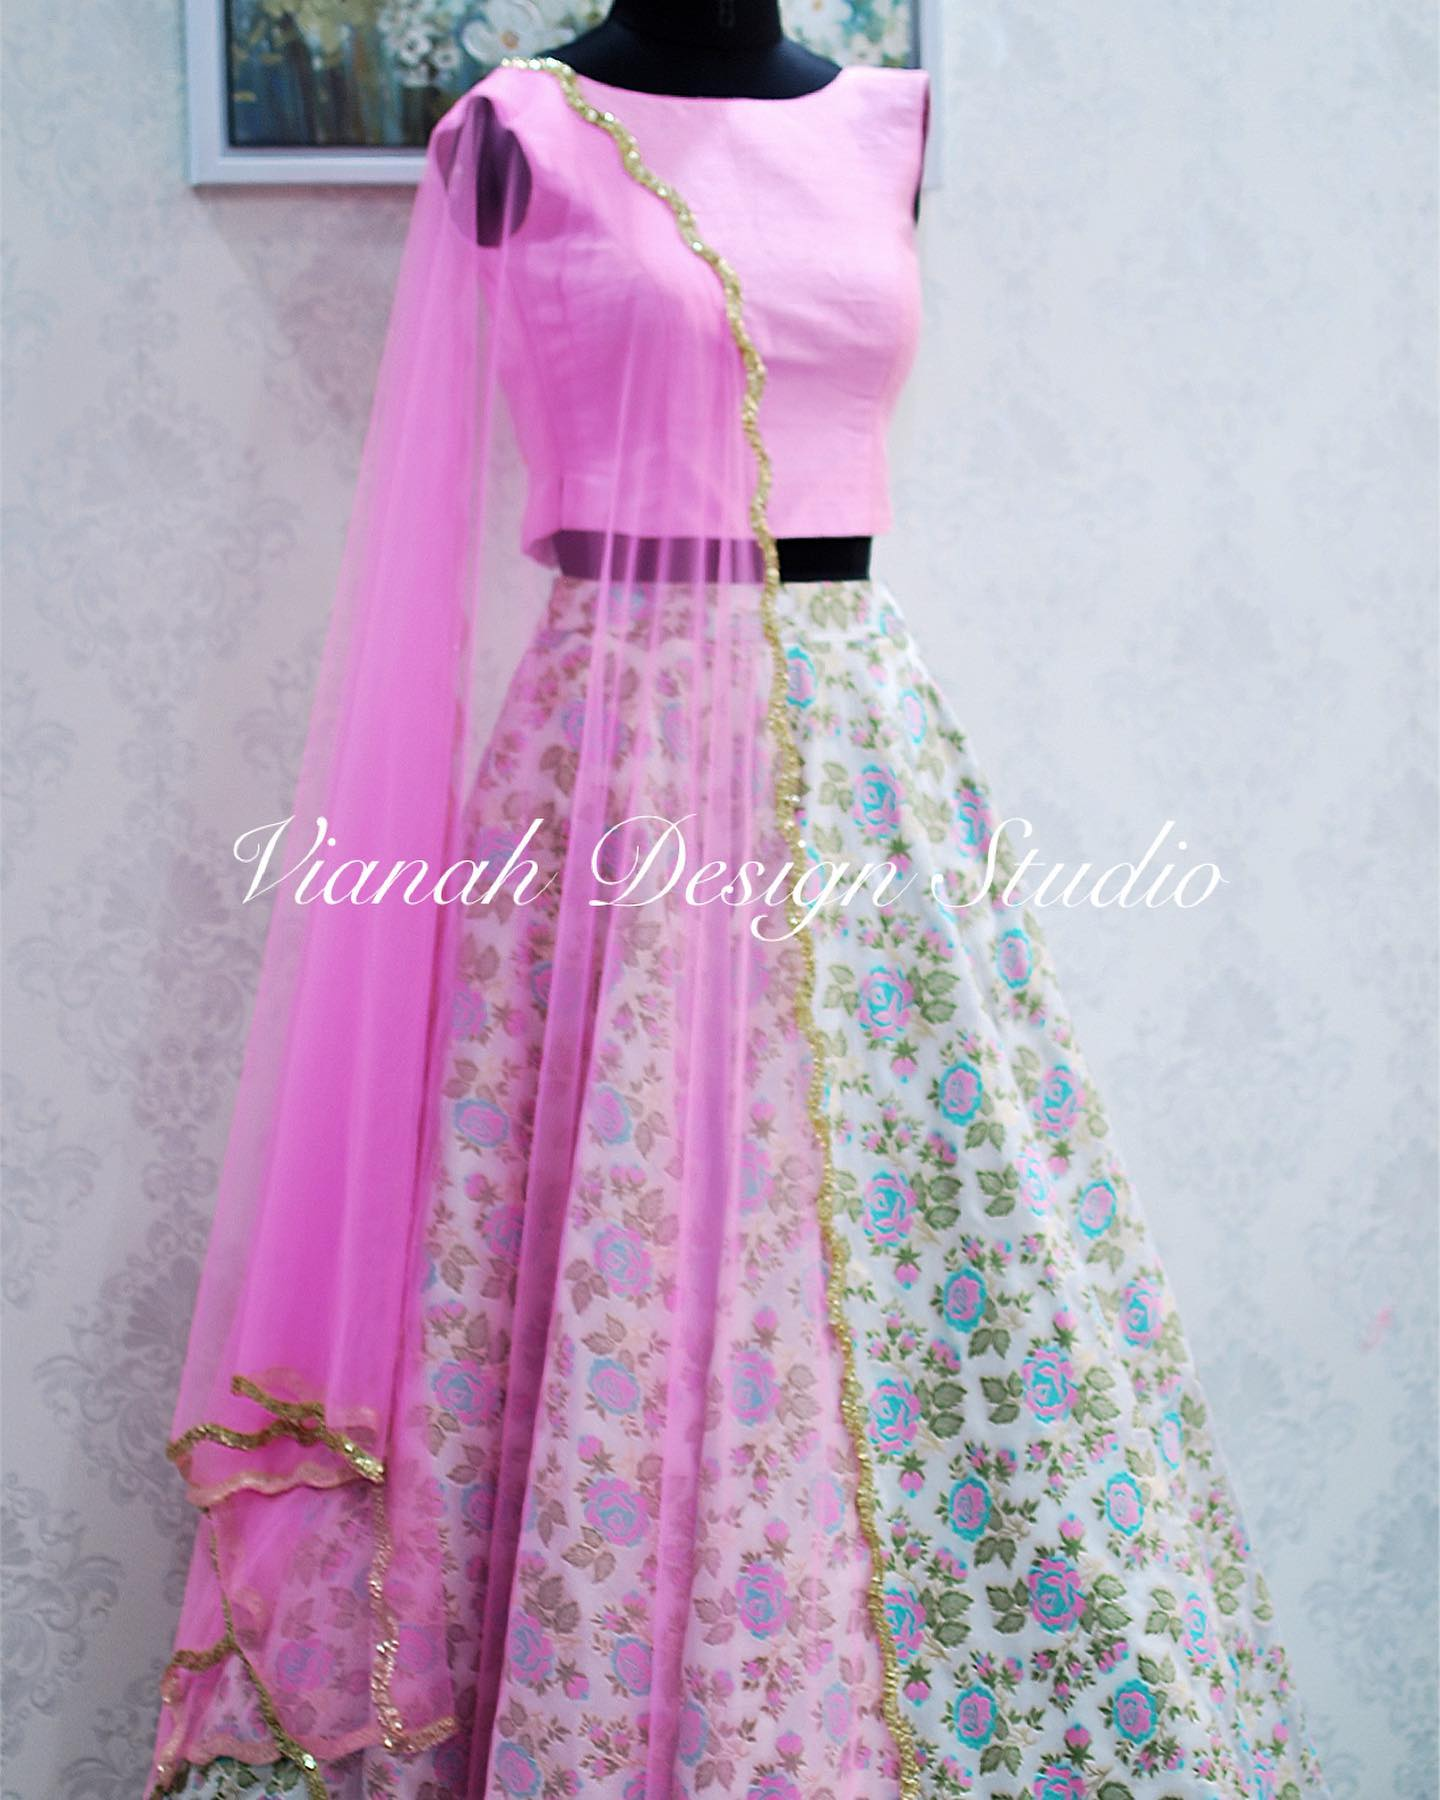 Customised Pure banaras skirt paired with pink sleeveless Crop top and cut work dupatta.